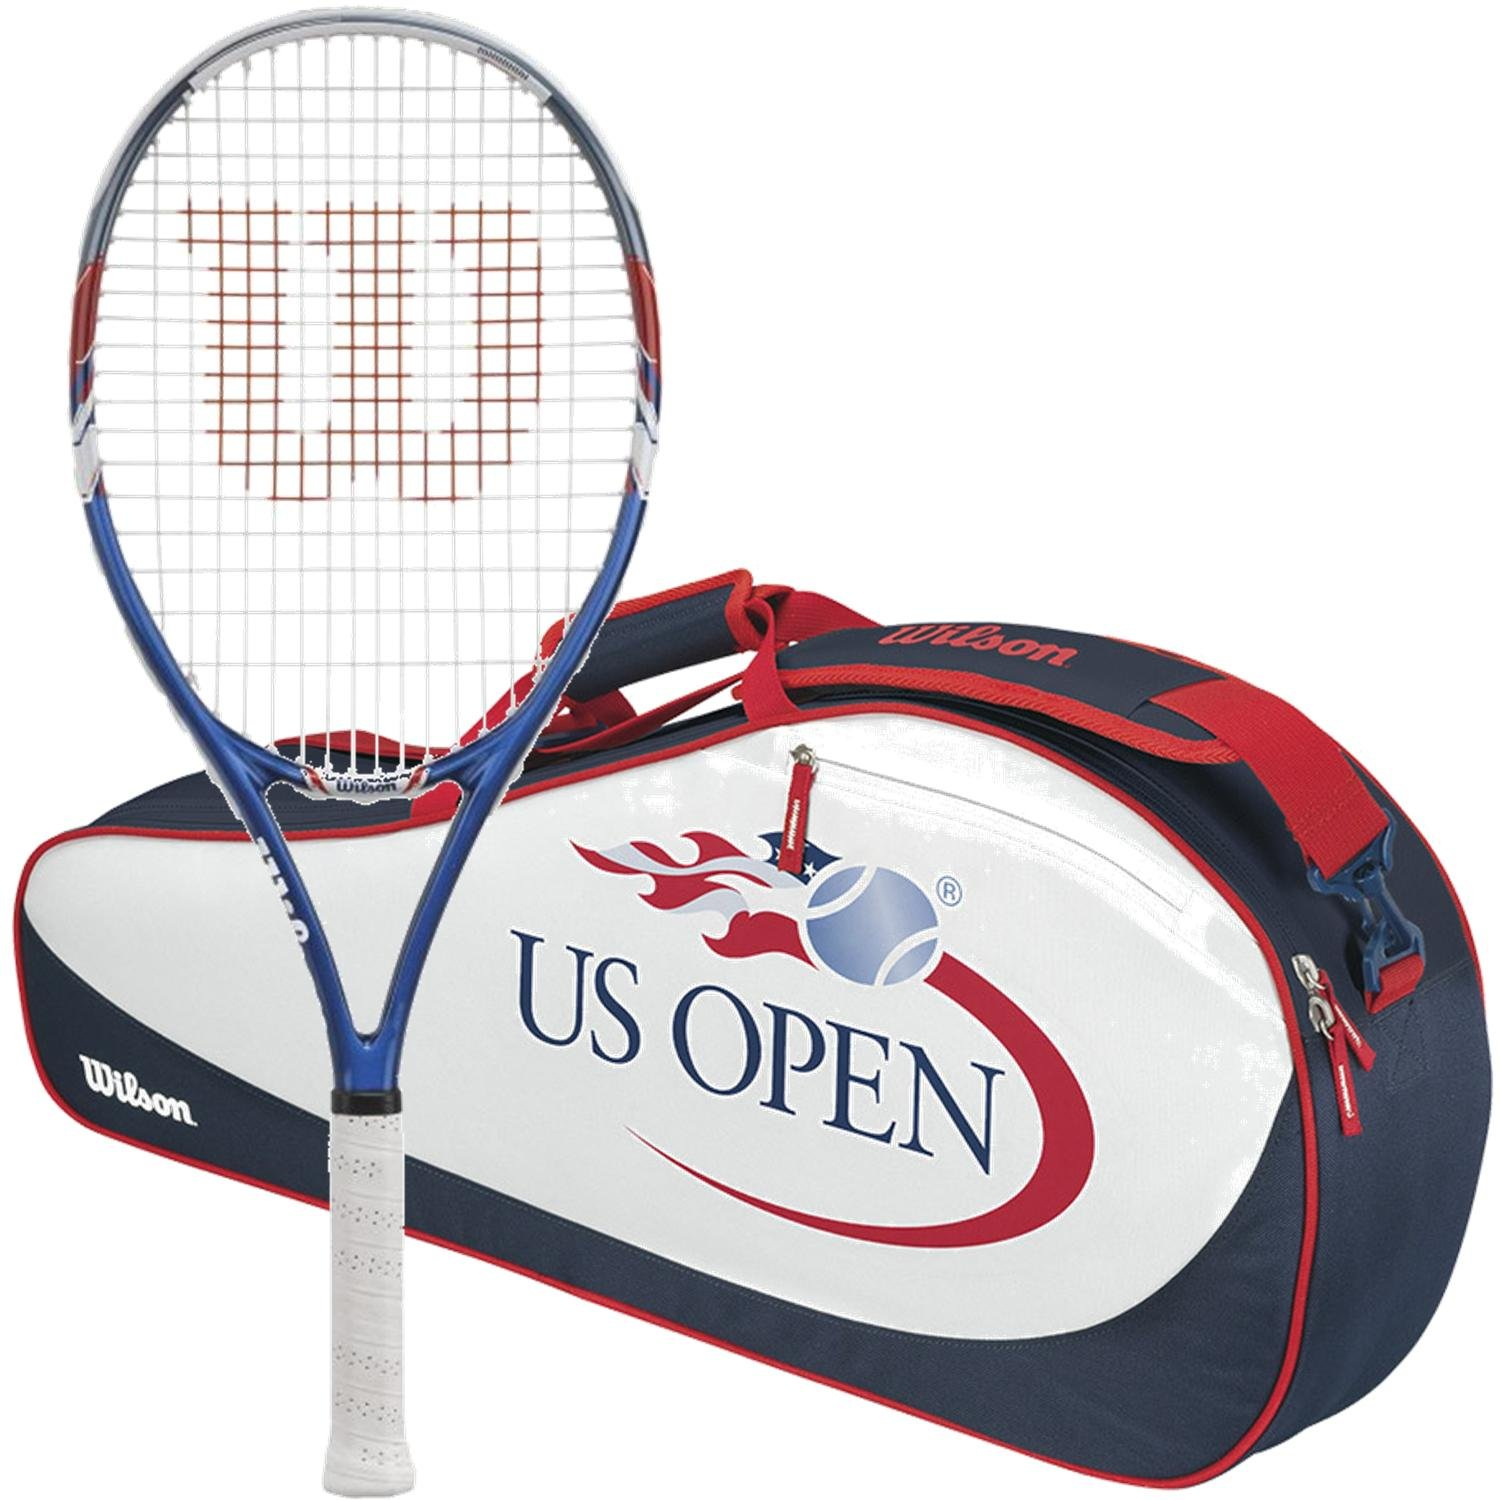 Wilson US Open Pre-Strung Tennis Racquet (Grip Size 4 1/4) bundled with a Limited Edition US Open 3 Pack Tennis Bag